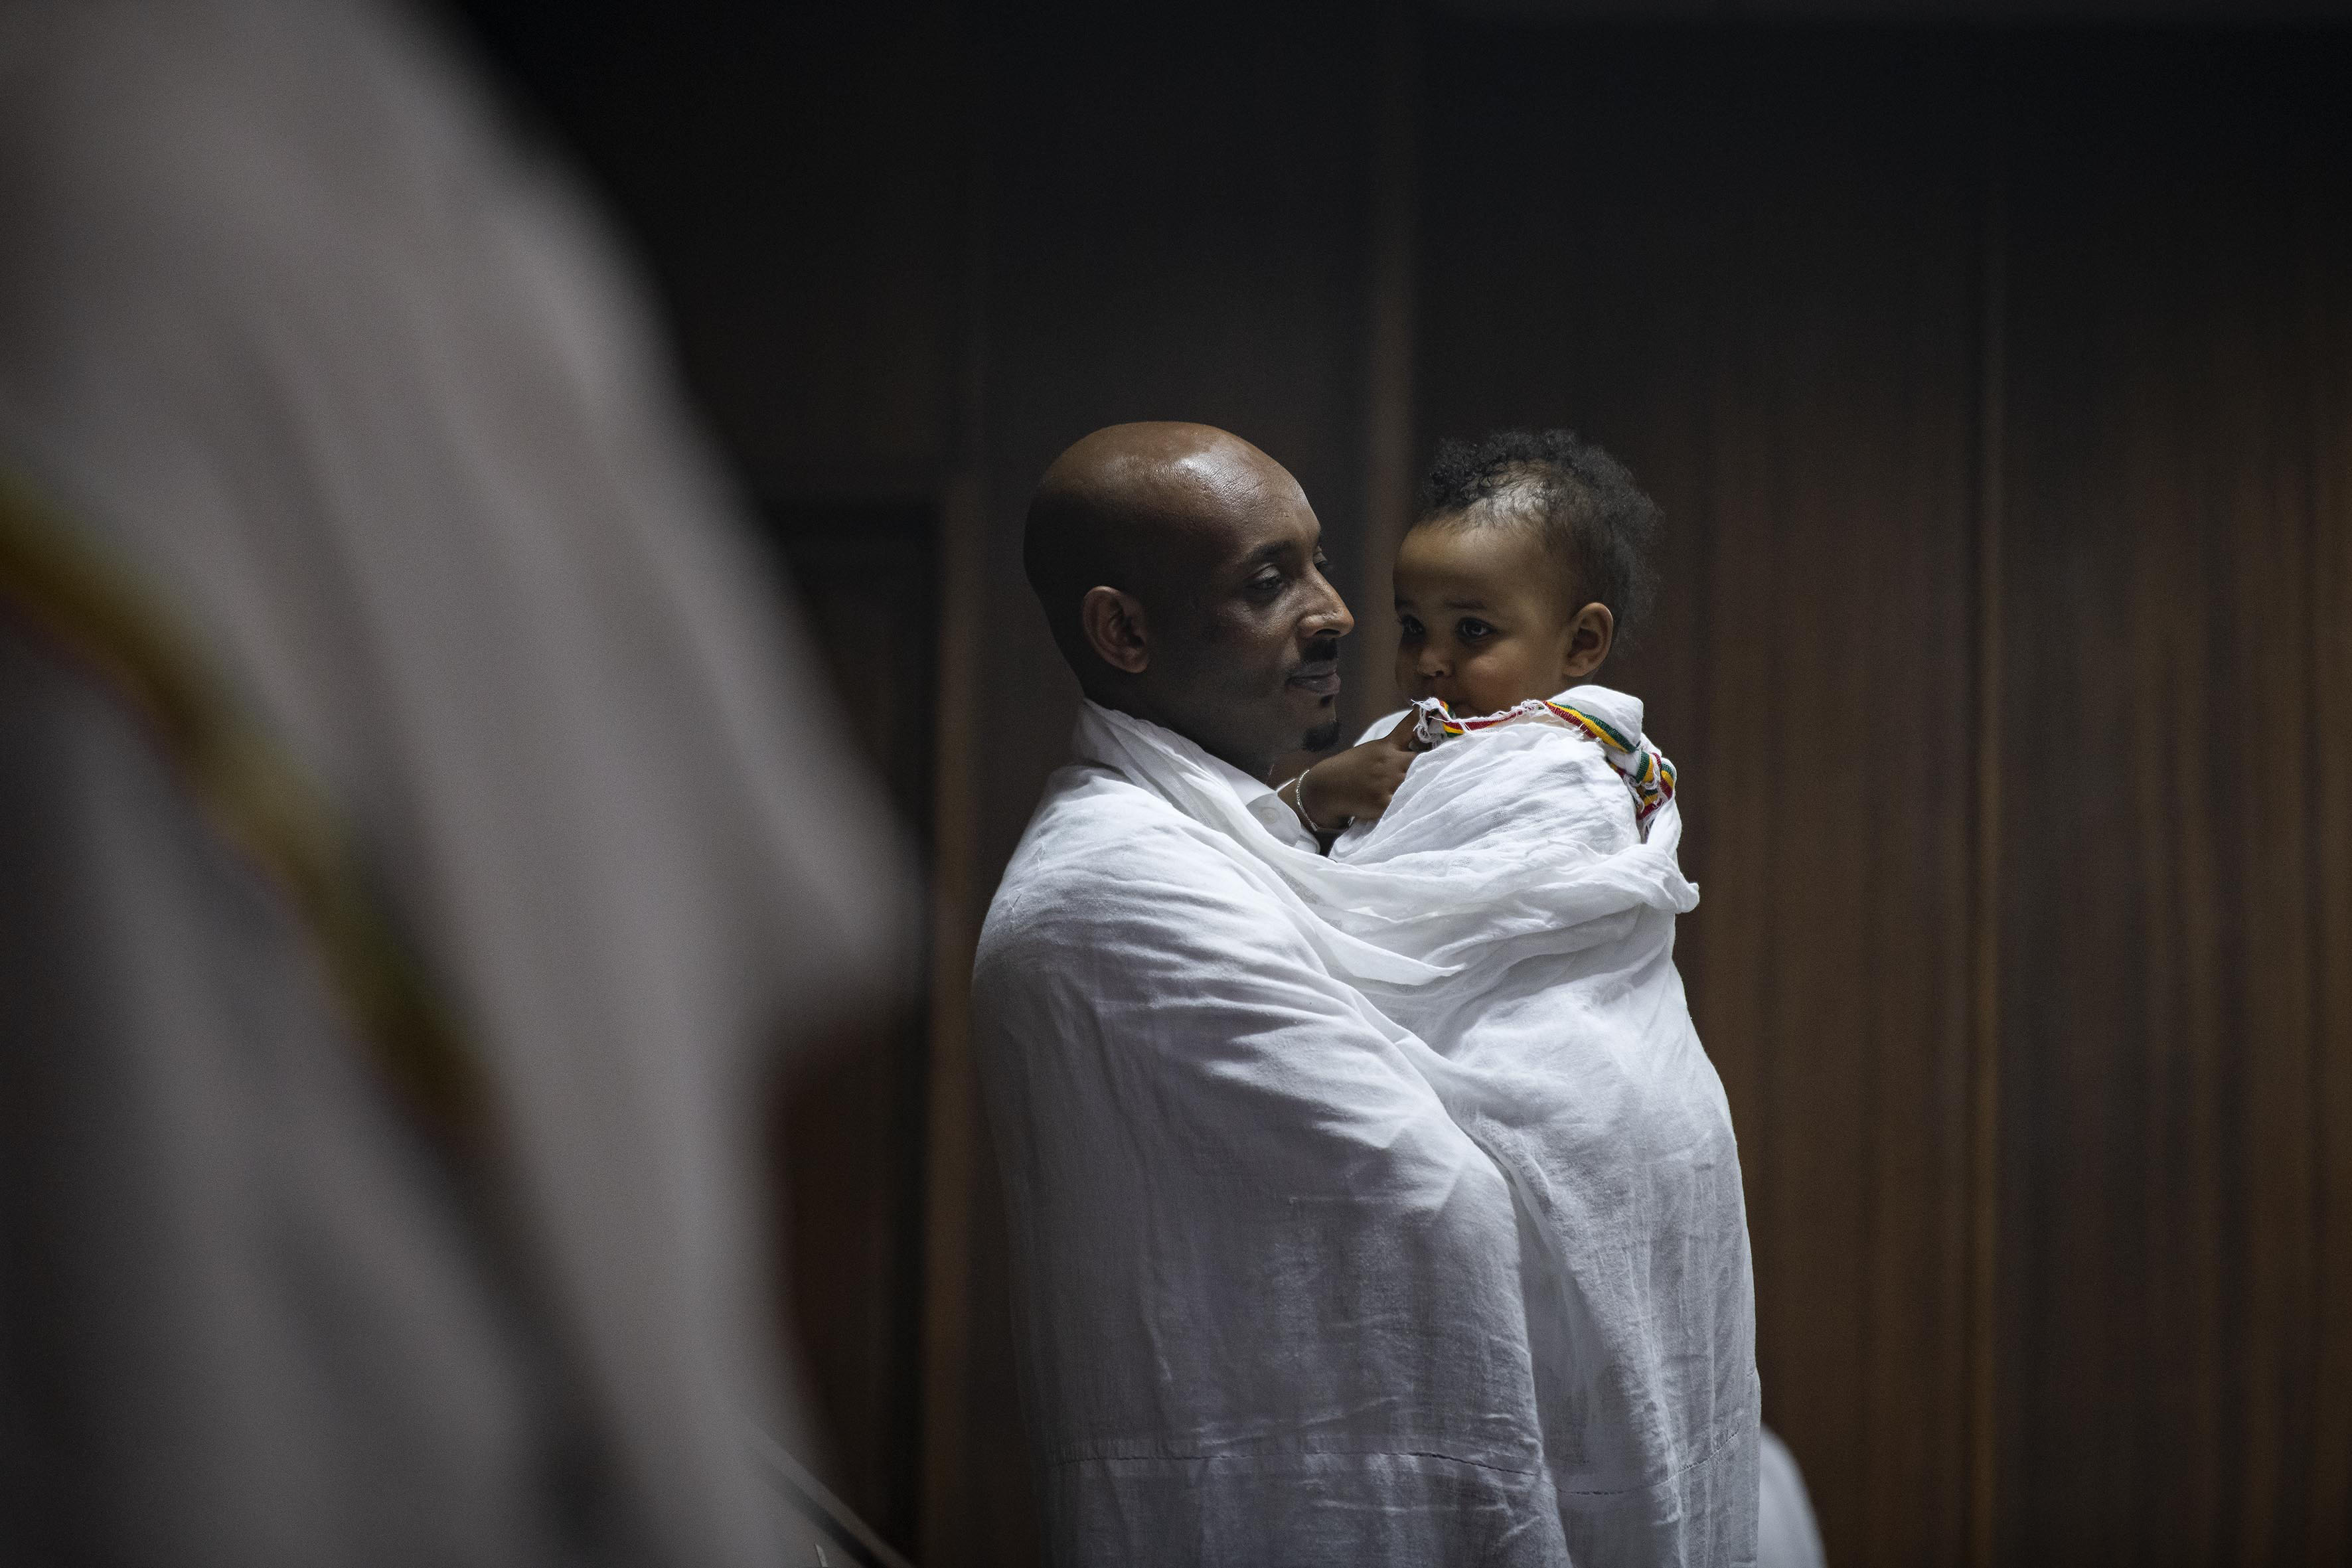 12 September 2019: An Ethiopian man dressed in traditional clothing cradles his baby during a prayer during the New Year service at the Ethiopian Orthodox Tewahedo Church in Berea, Johannesburg.